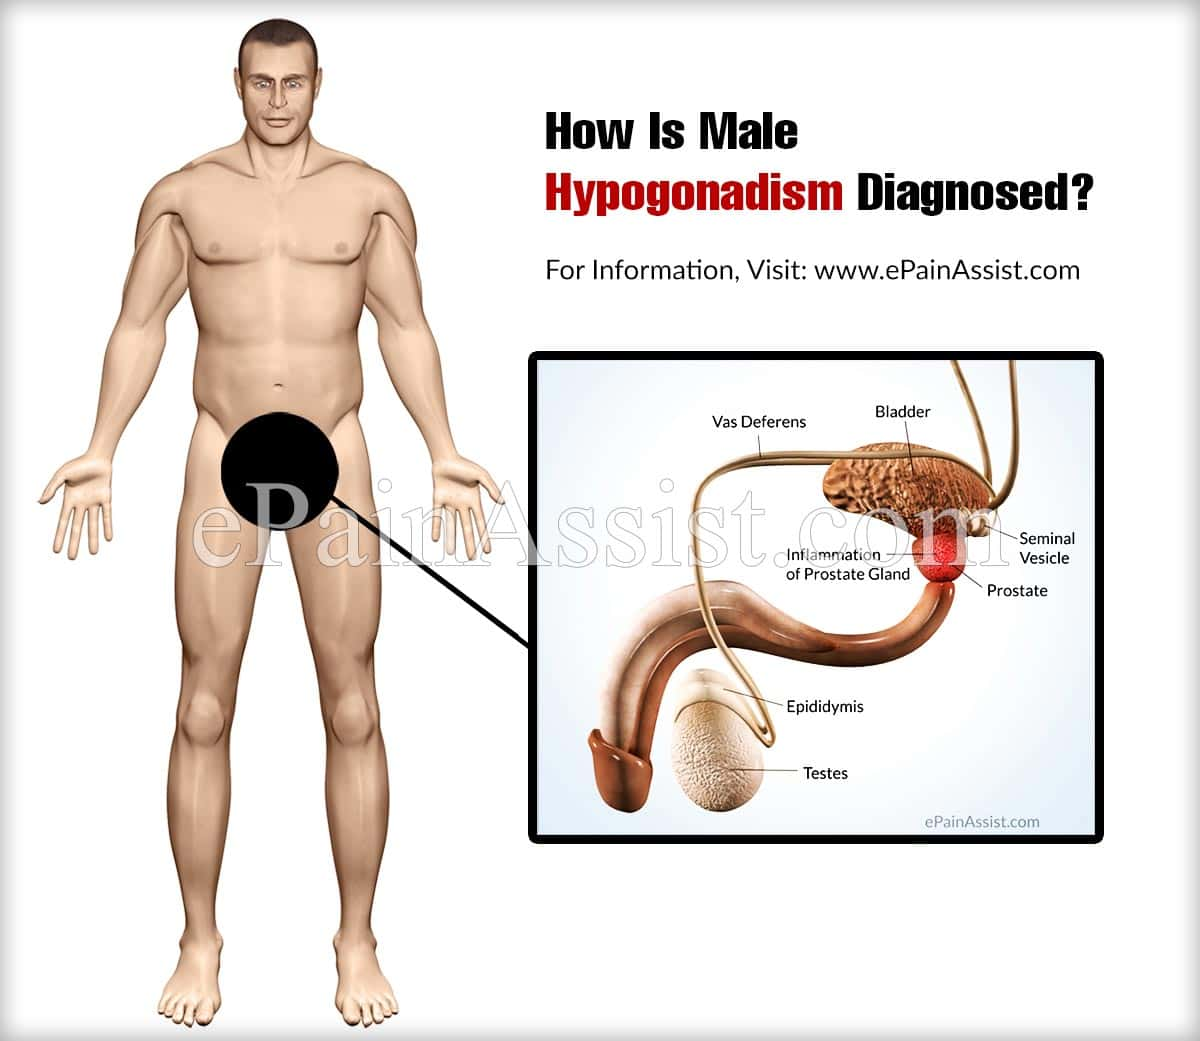 How Is Male Hypogonadism Diagnosed?